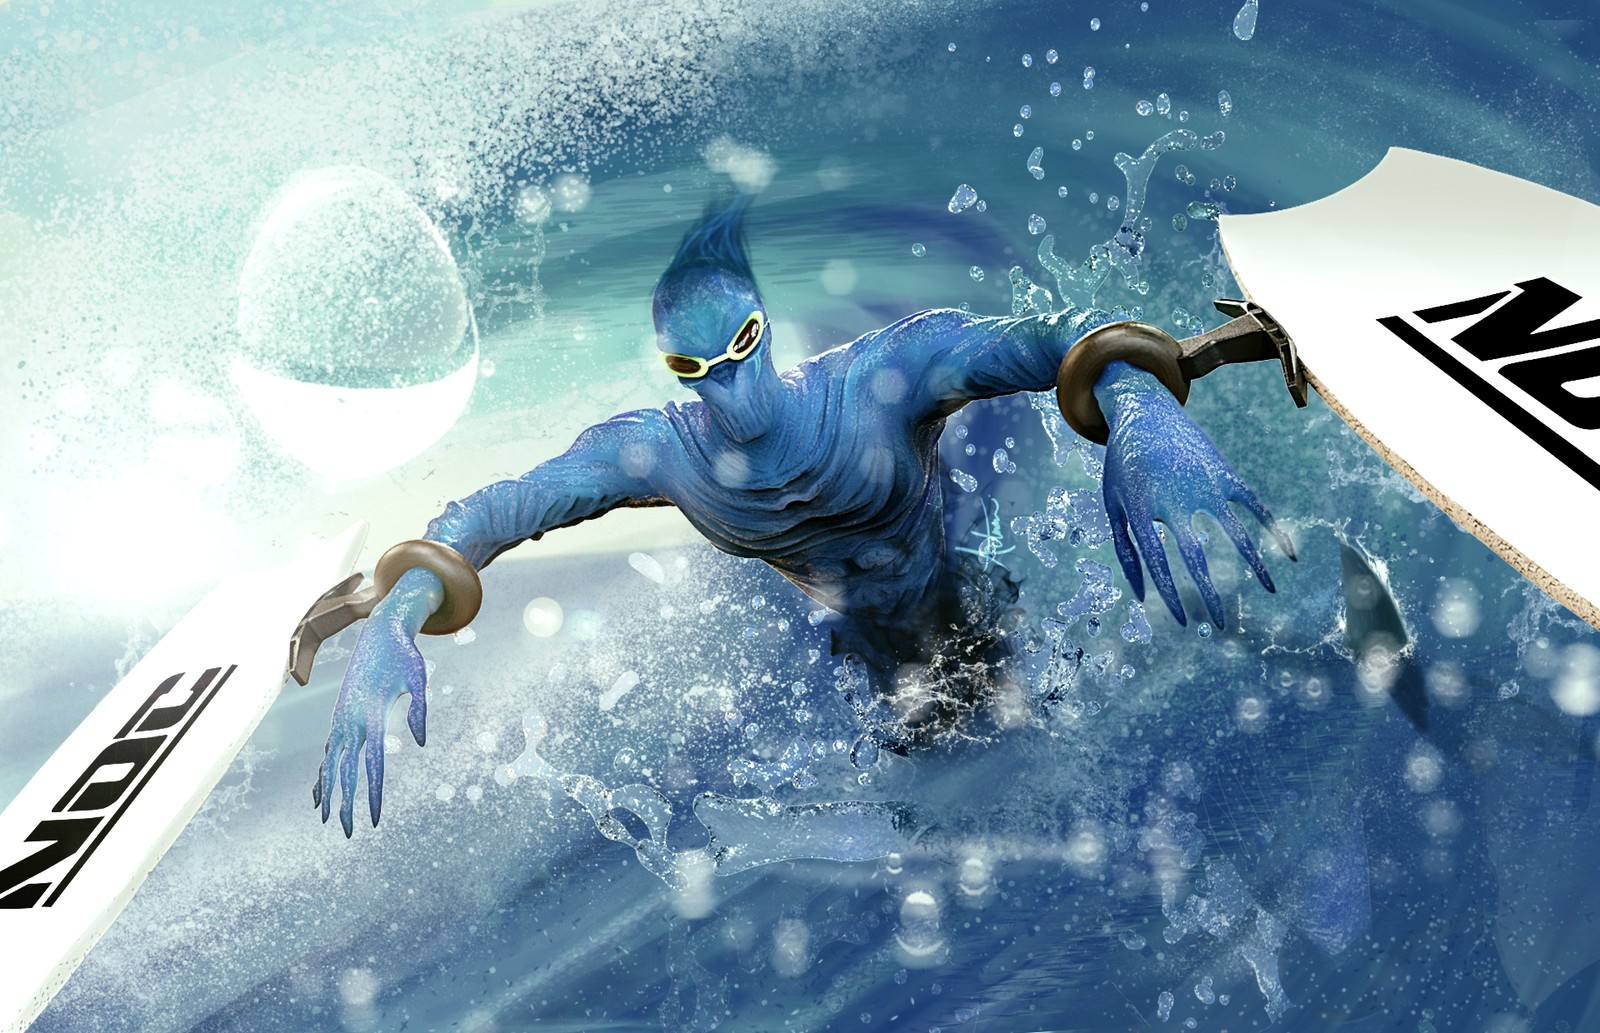 Surfer Nocturne League of Legends Skin idea